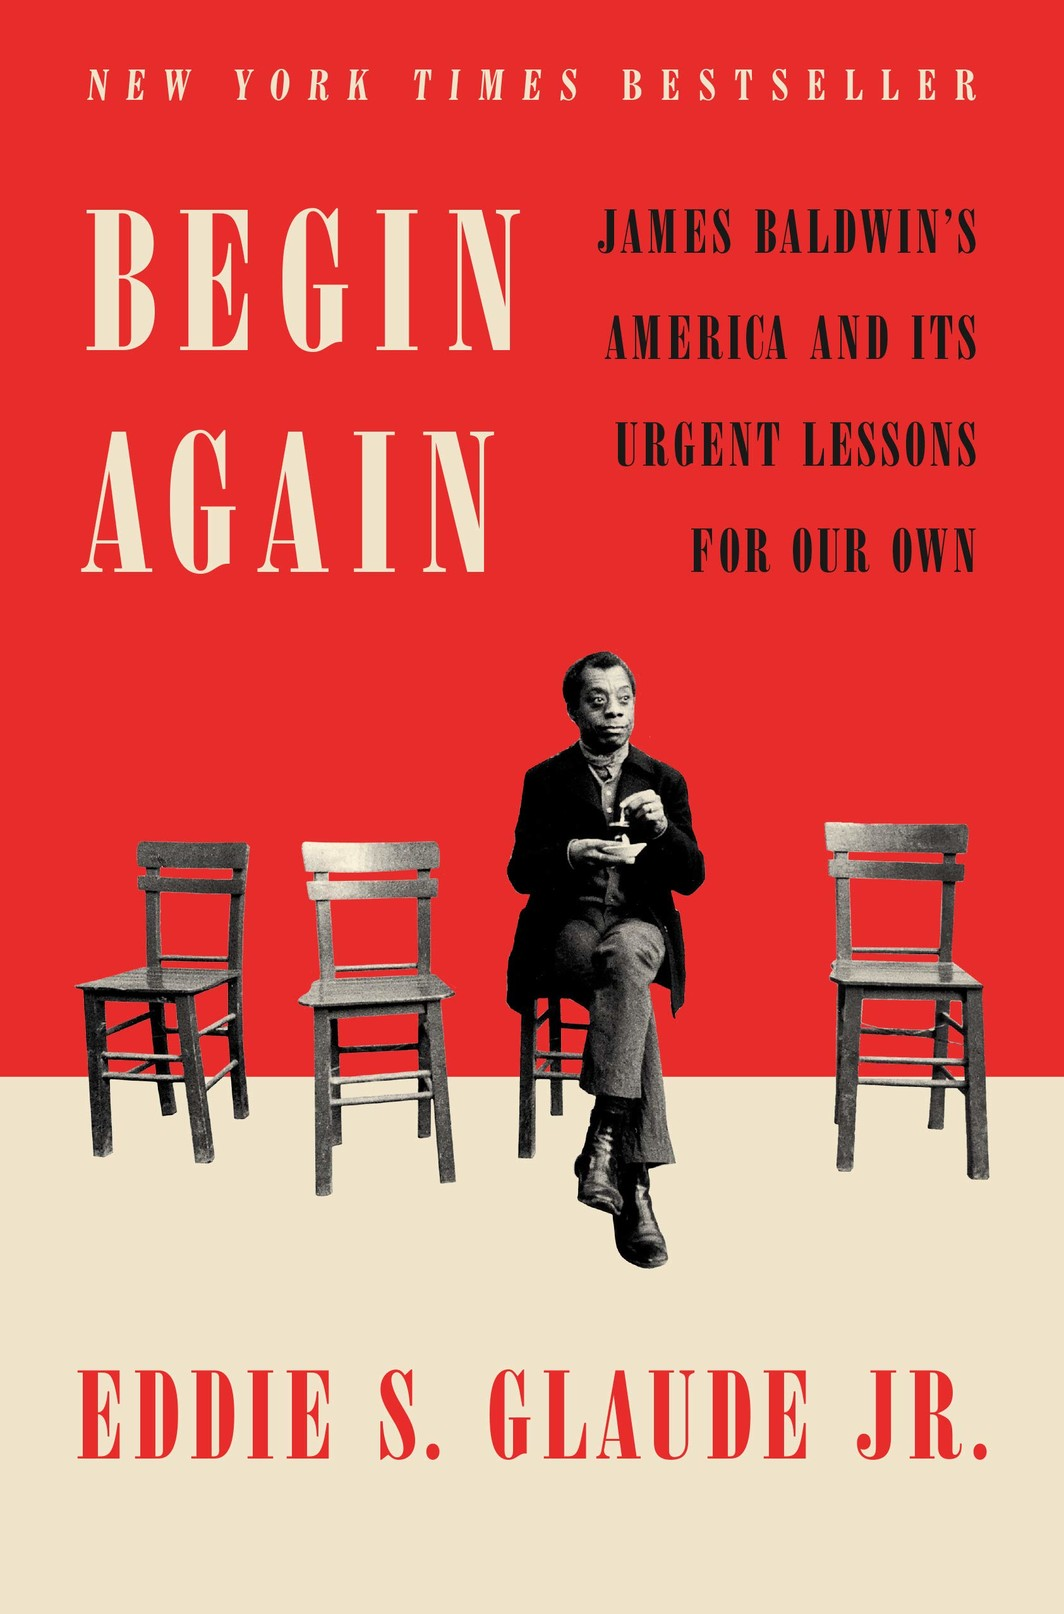 The cover of Begin Again: James Baldwin's America and Its Urgent Lessons for Our Own